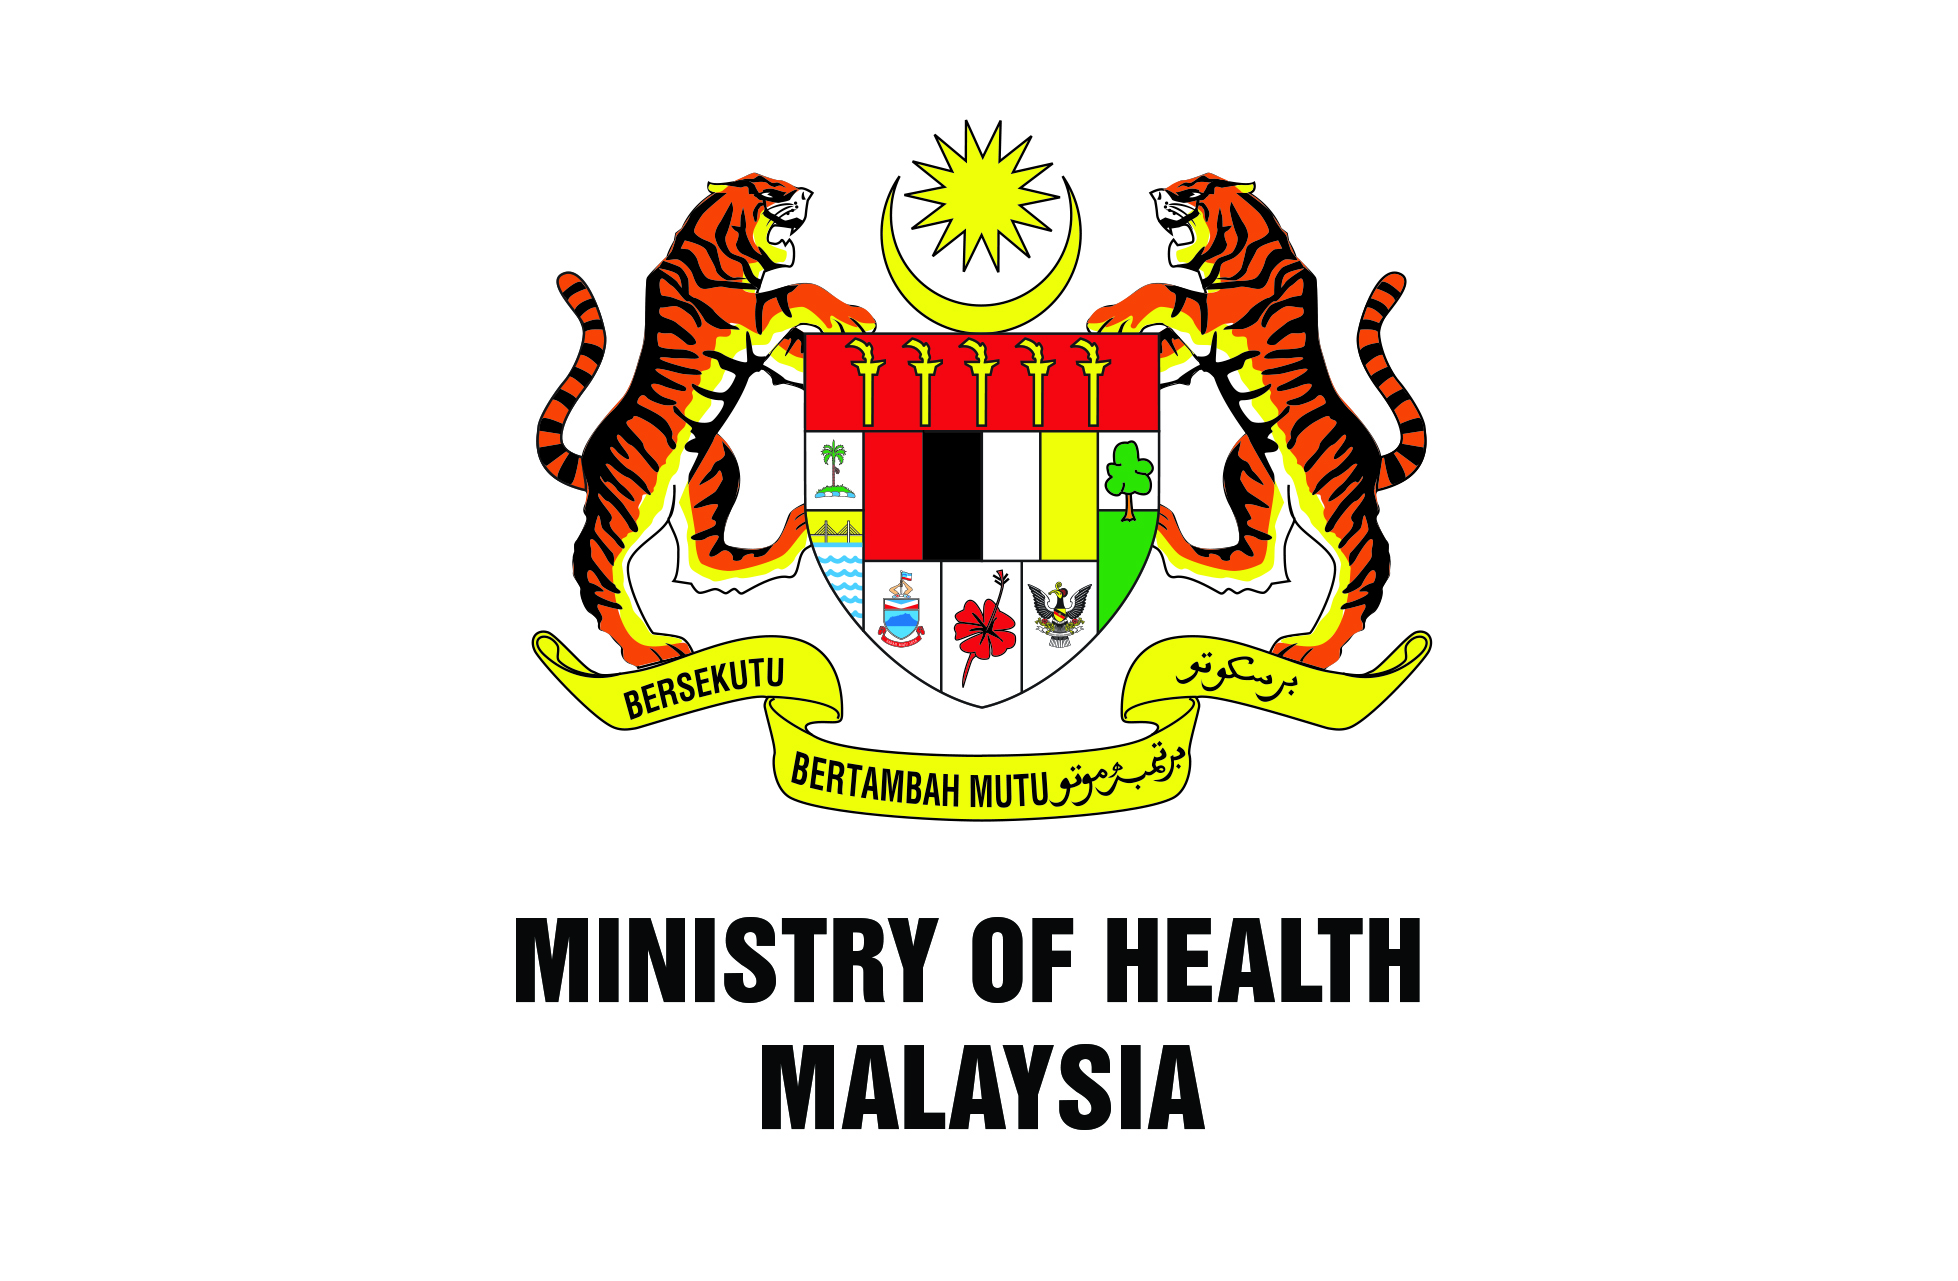 Ministry of Health Malaysia